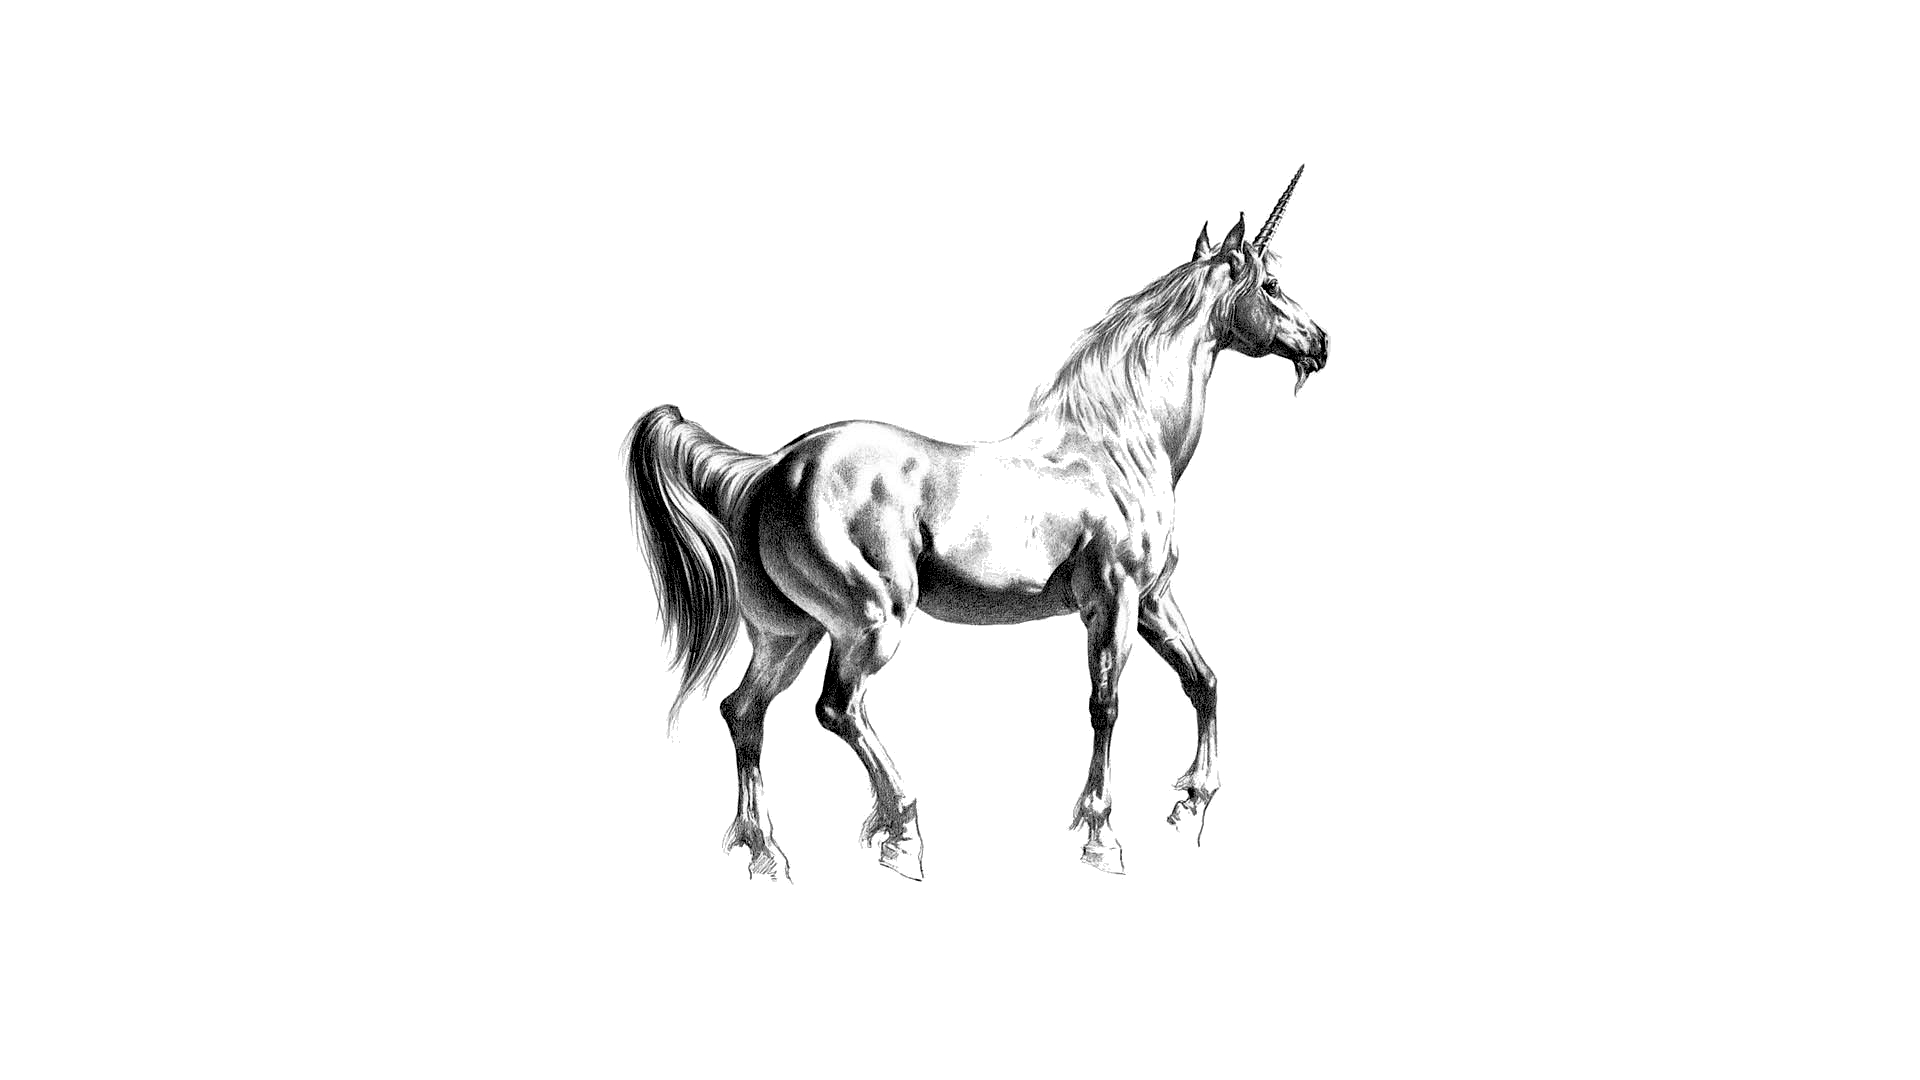 unicorn wallpapers full hd - photo #23